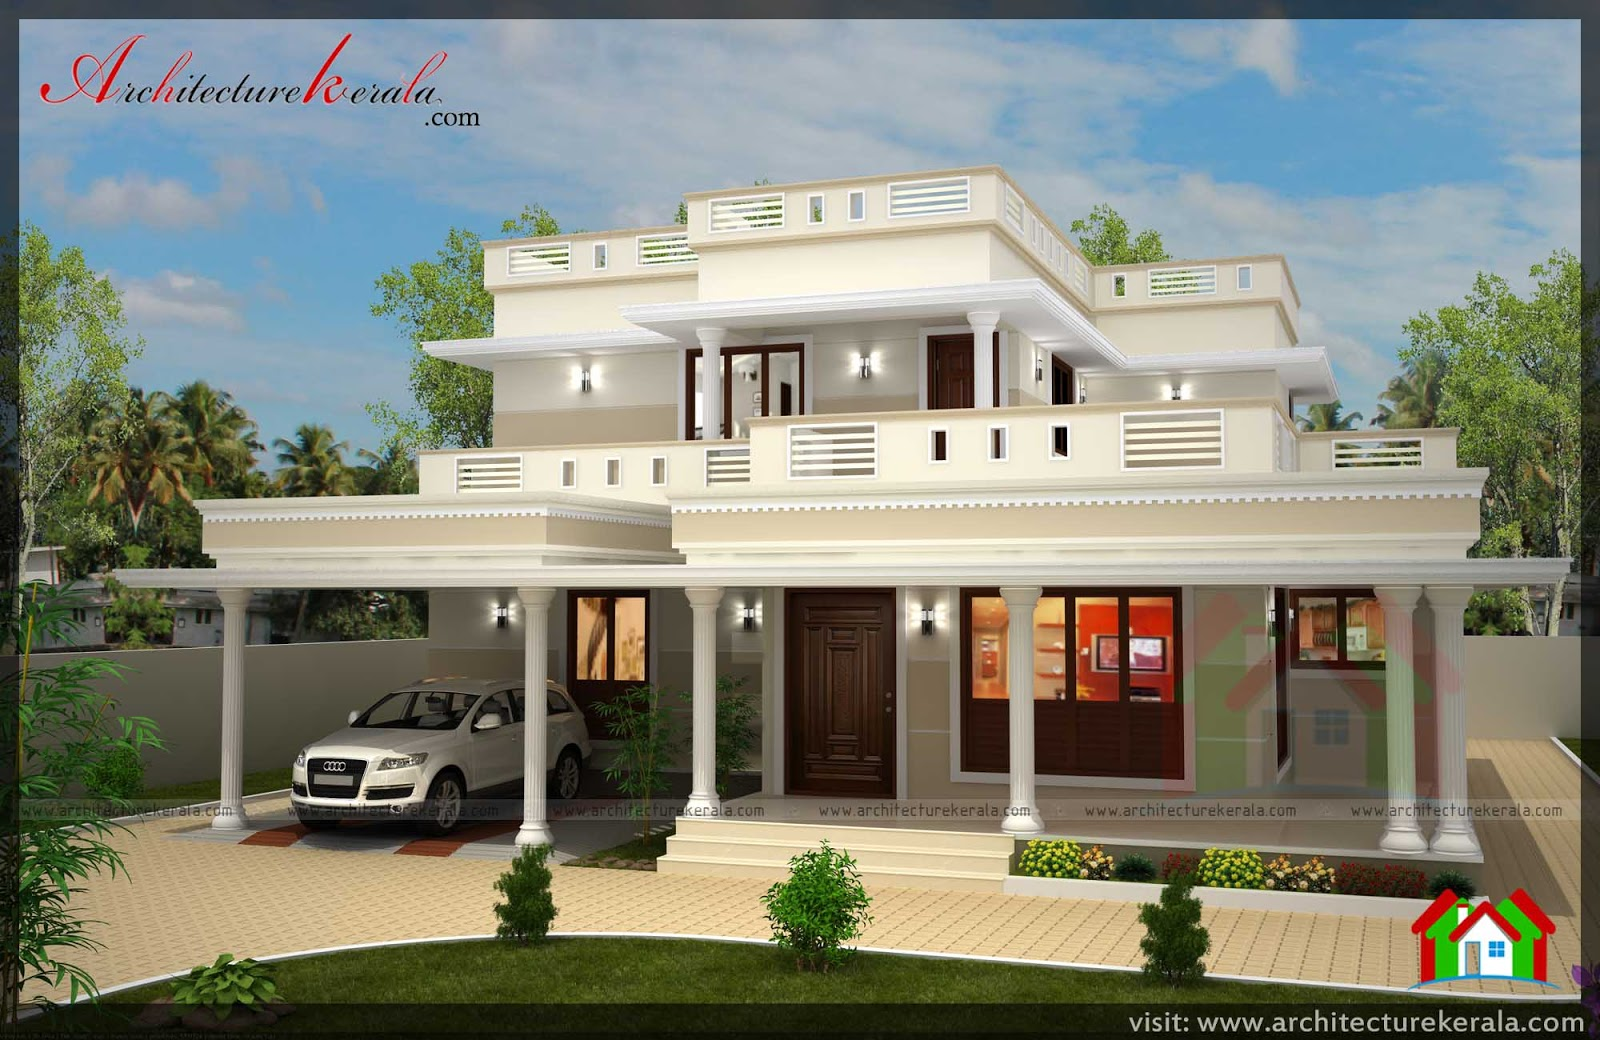 Stunning 4 bedroom kerala home design with pooja room free for 4 bedroom kerala house plans and elevations